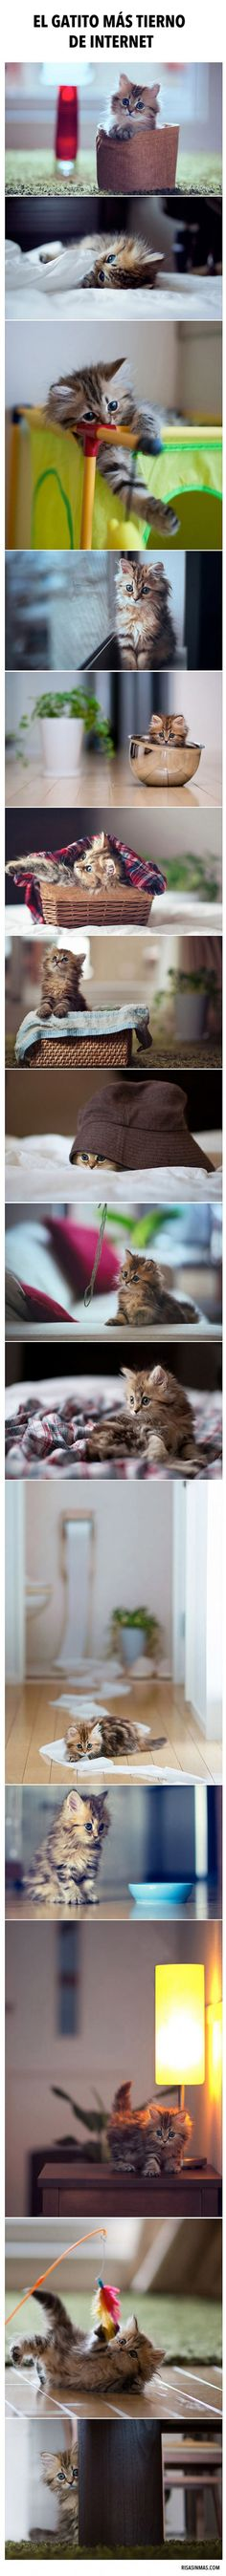 Oh my gosh tiny kitten! Kittens And Puppies, Cute Cats And Kittens, I Love Cats, Crazy Cats, Kittens Cutest, Cute Small Animals, Animals And Pets, Baby Animals, Funny Animals